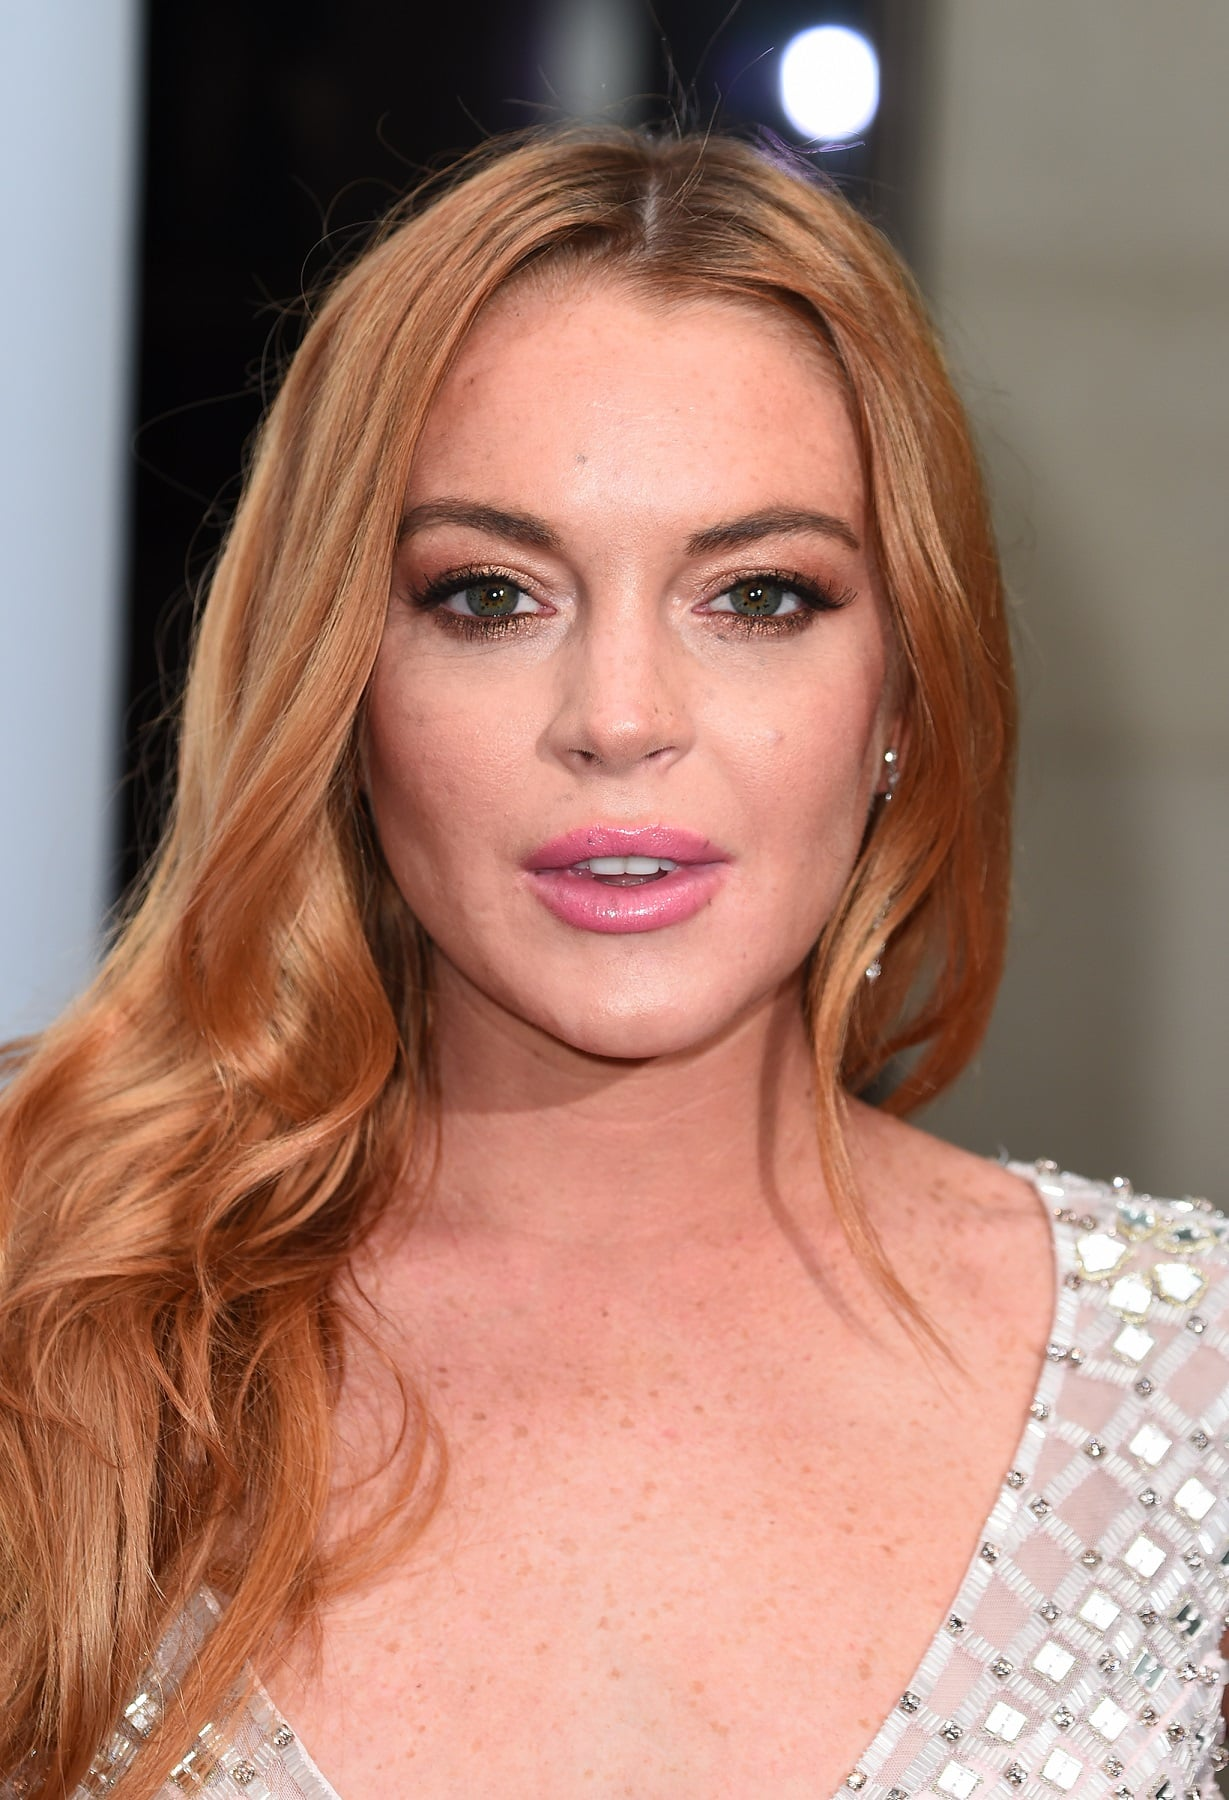 LONDON, ENGLAND - JUNE 22:  Lindsay Lohan arrives for the 2016 Butterfly Ball  at The Grosvenor House Hotel on June 22, 2016 in London, England.  (Photo by Eamonn McCormack/Getty Images)